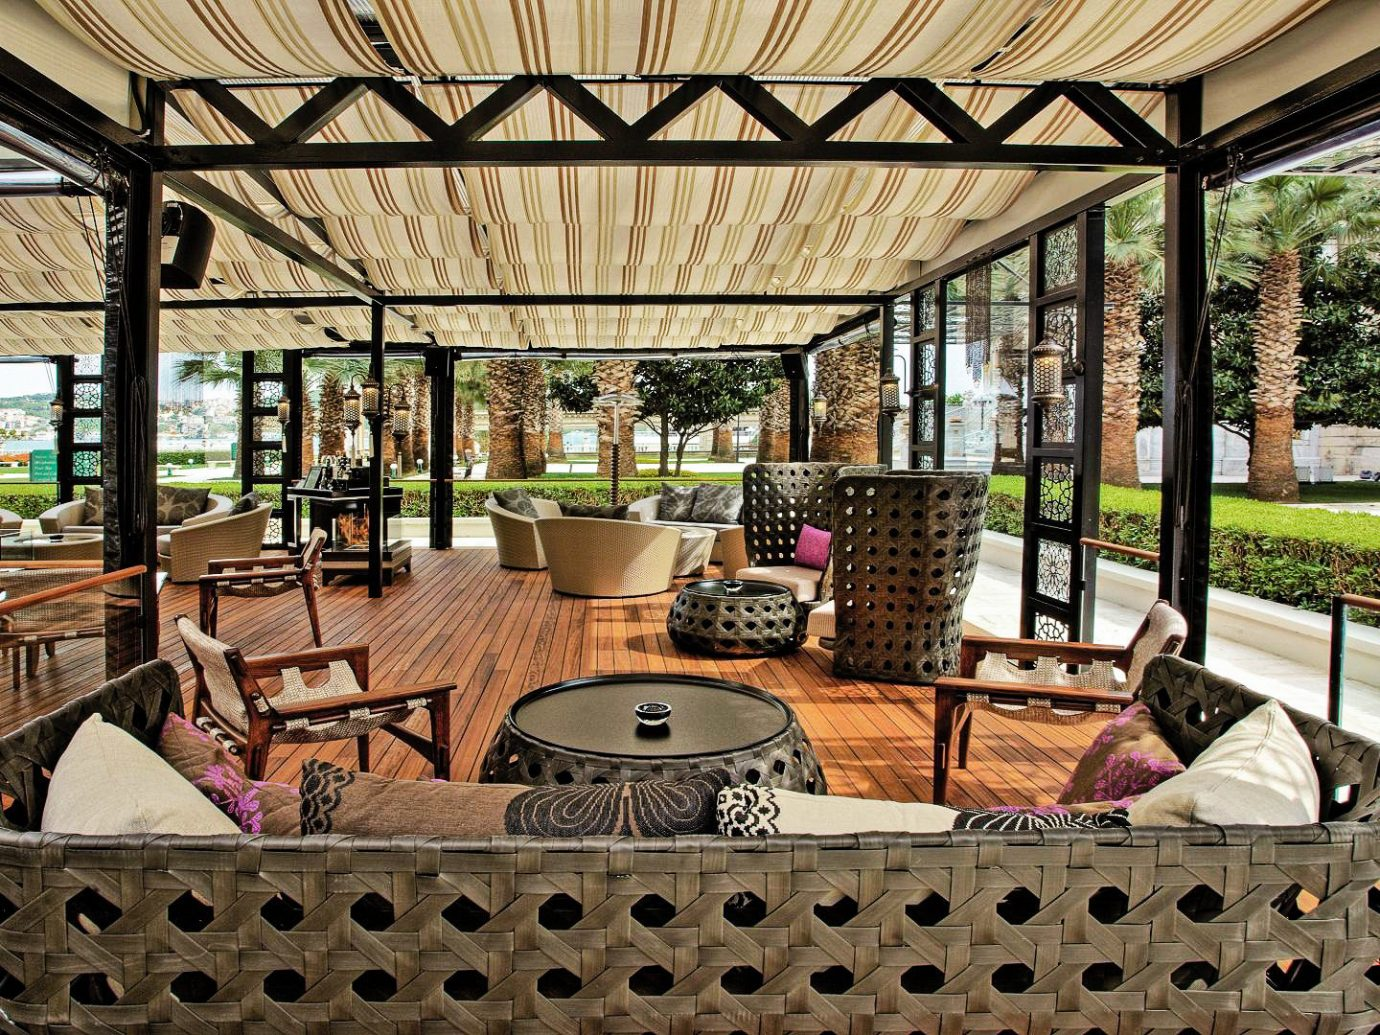 Boutique Hotels Hotels Luxury Travel building real estate outdoor structure Patio estate interior design roof furniture